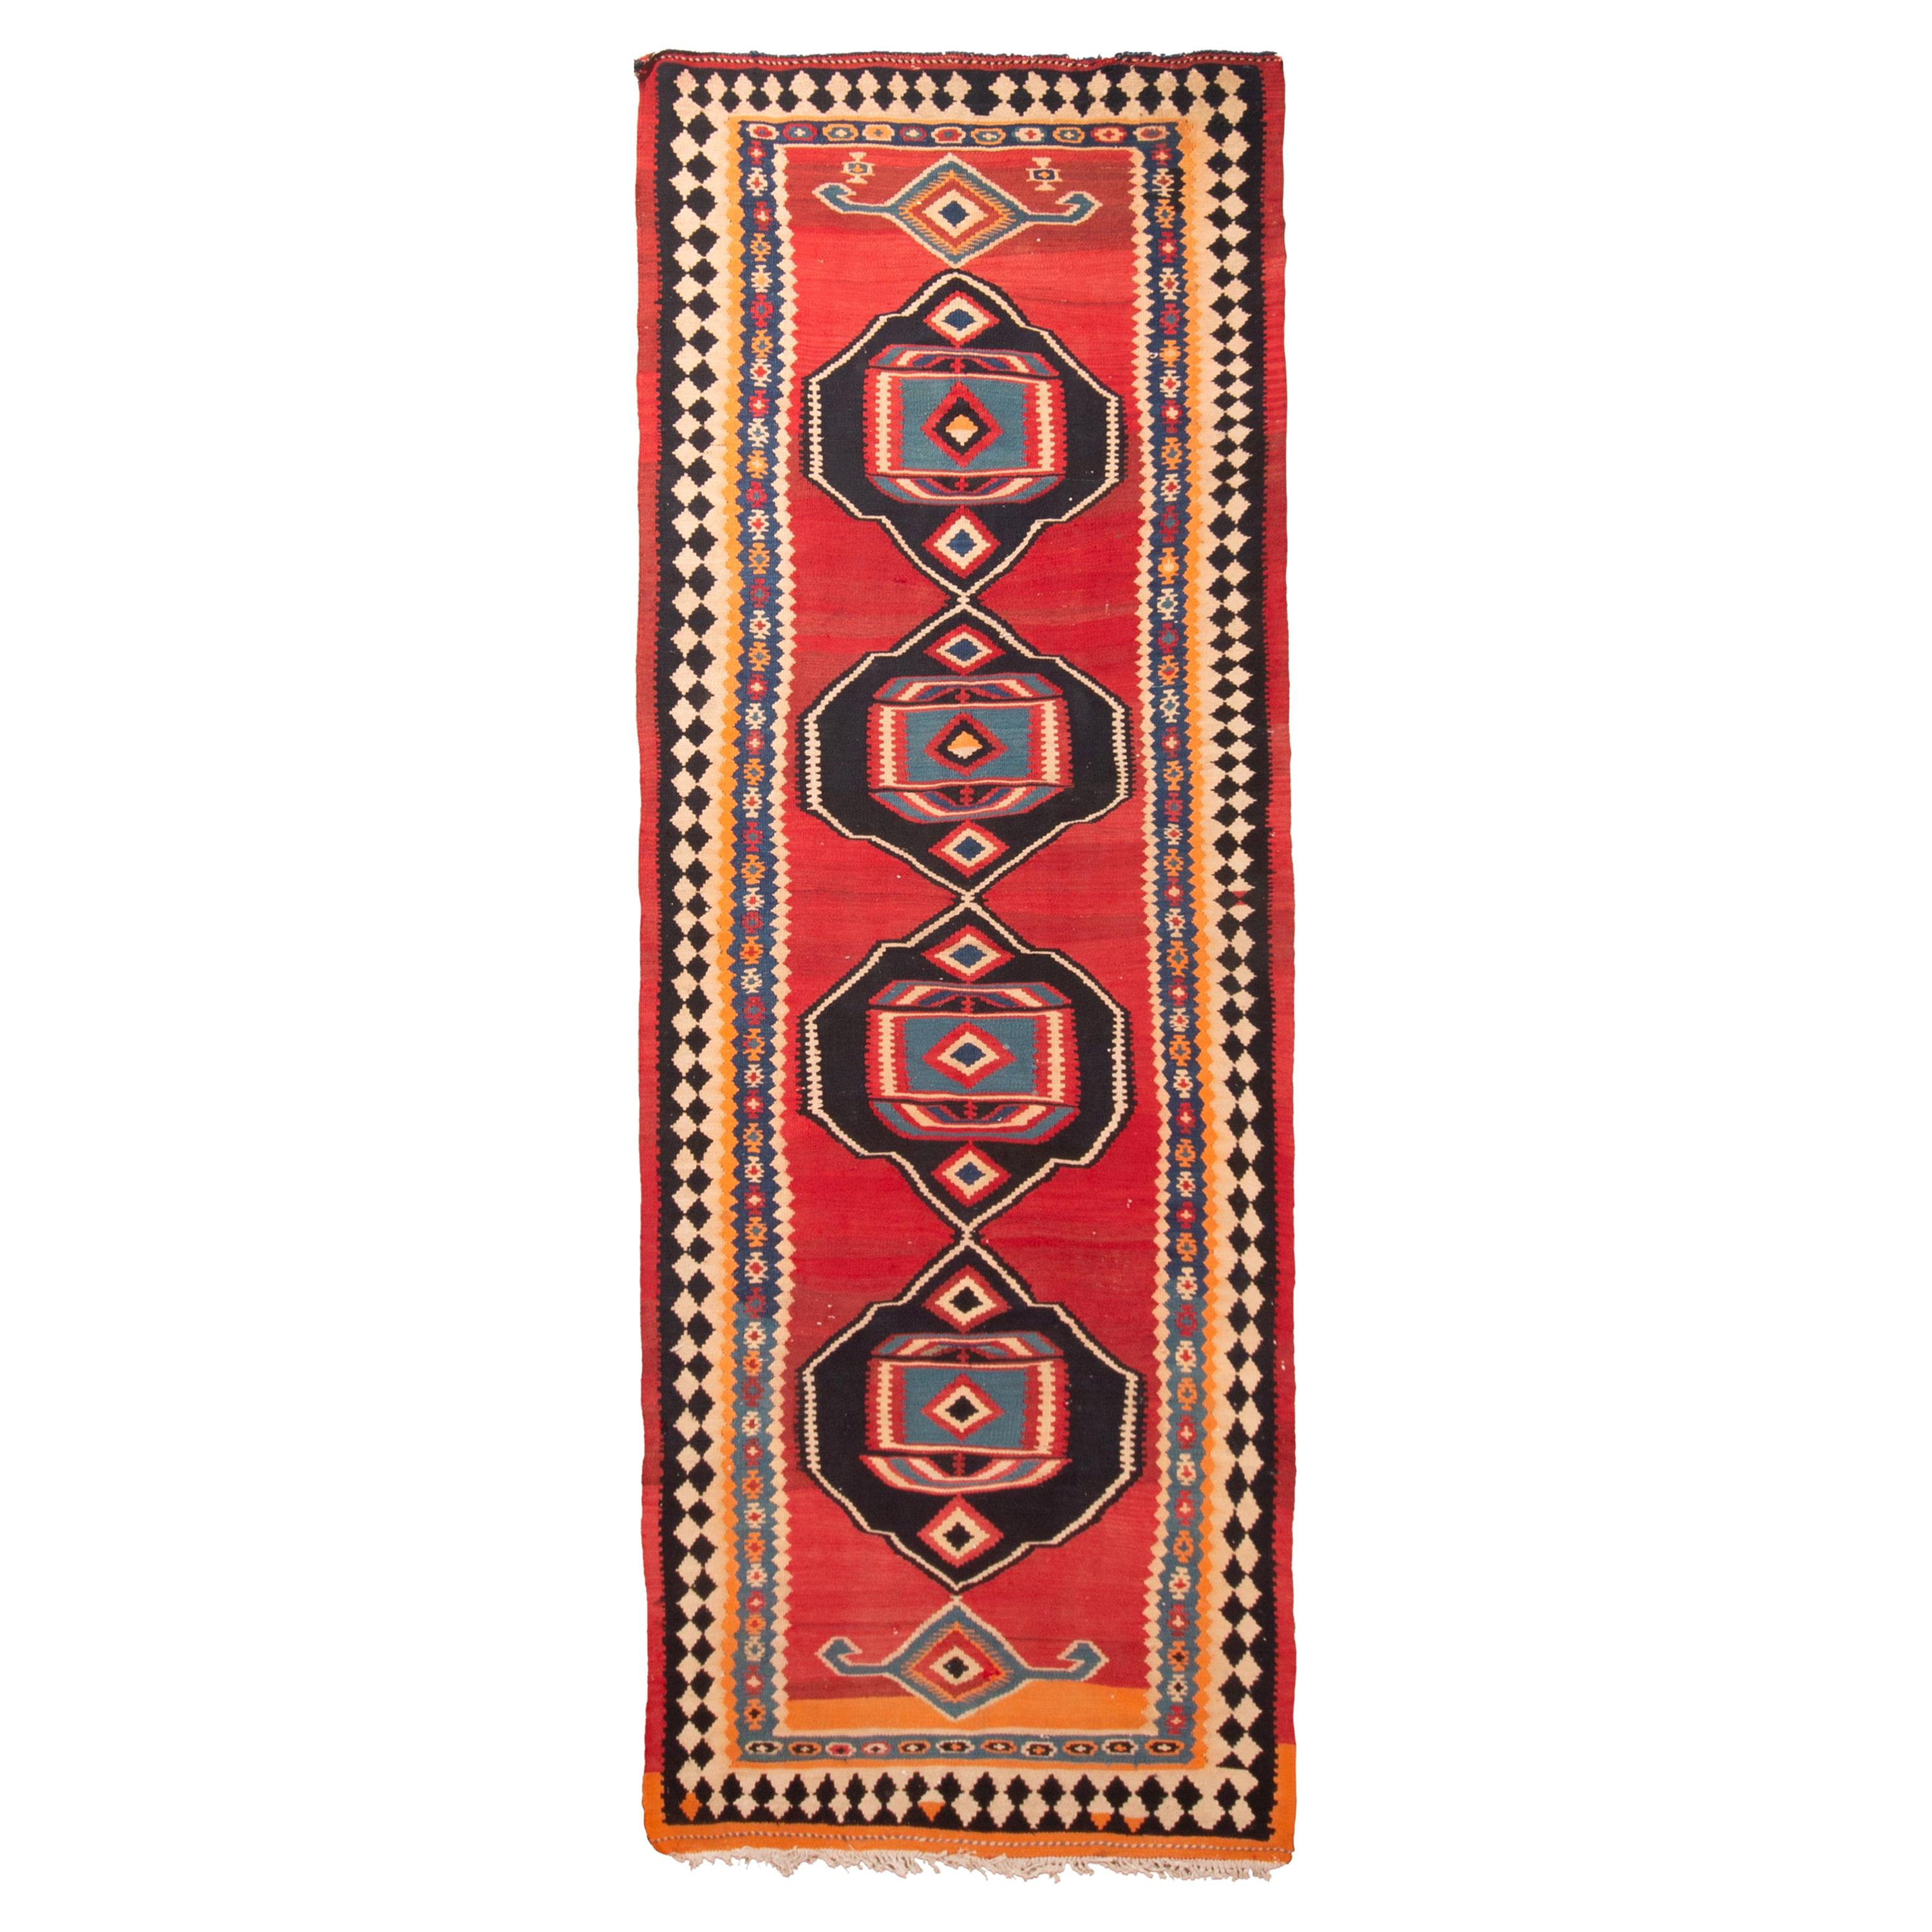 Antique Kurdish Persian Red and Black Wool Rug with Geometric Pattern